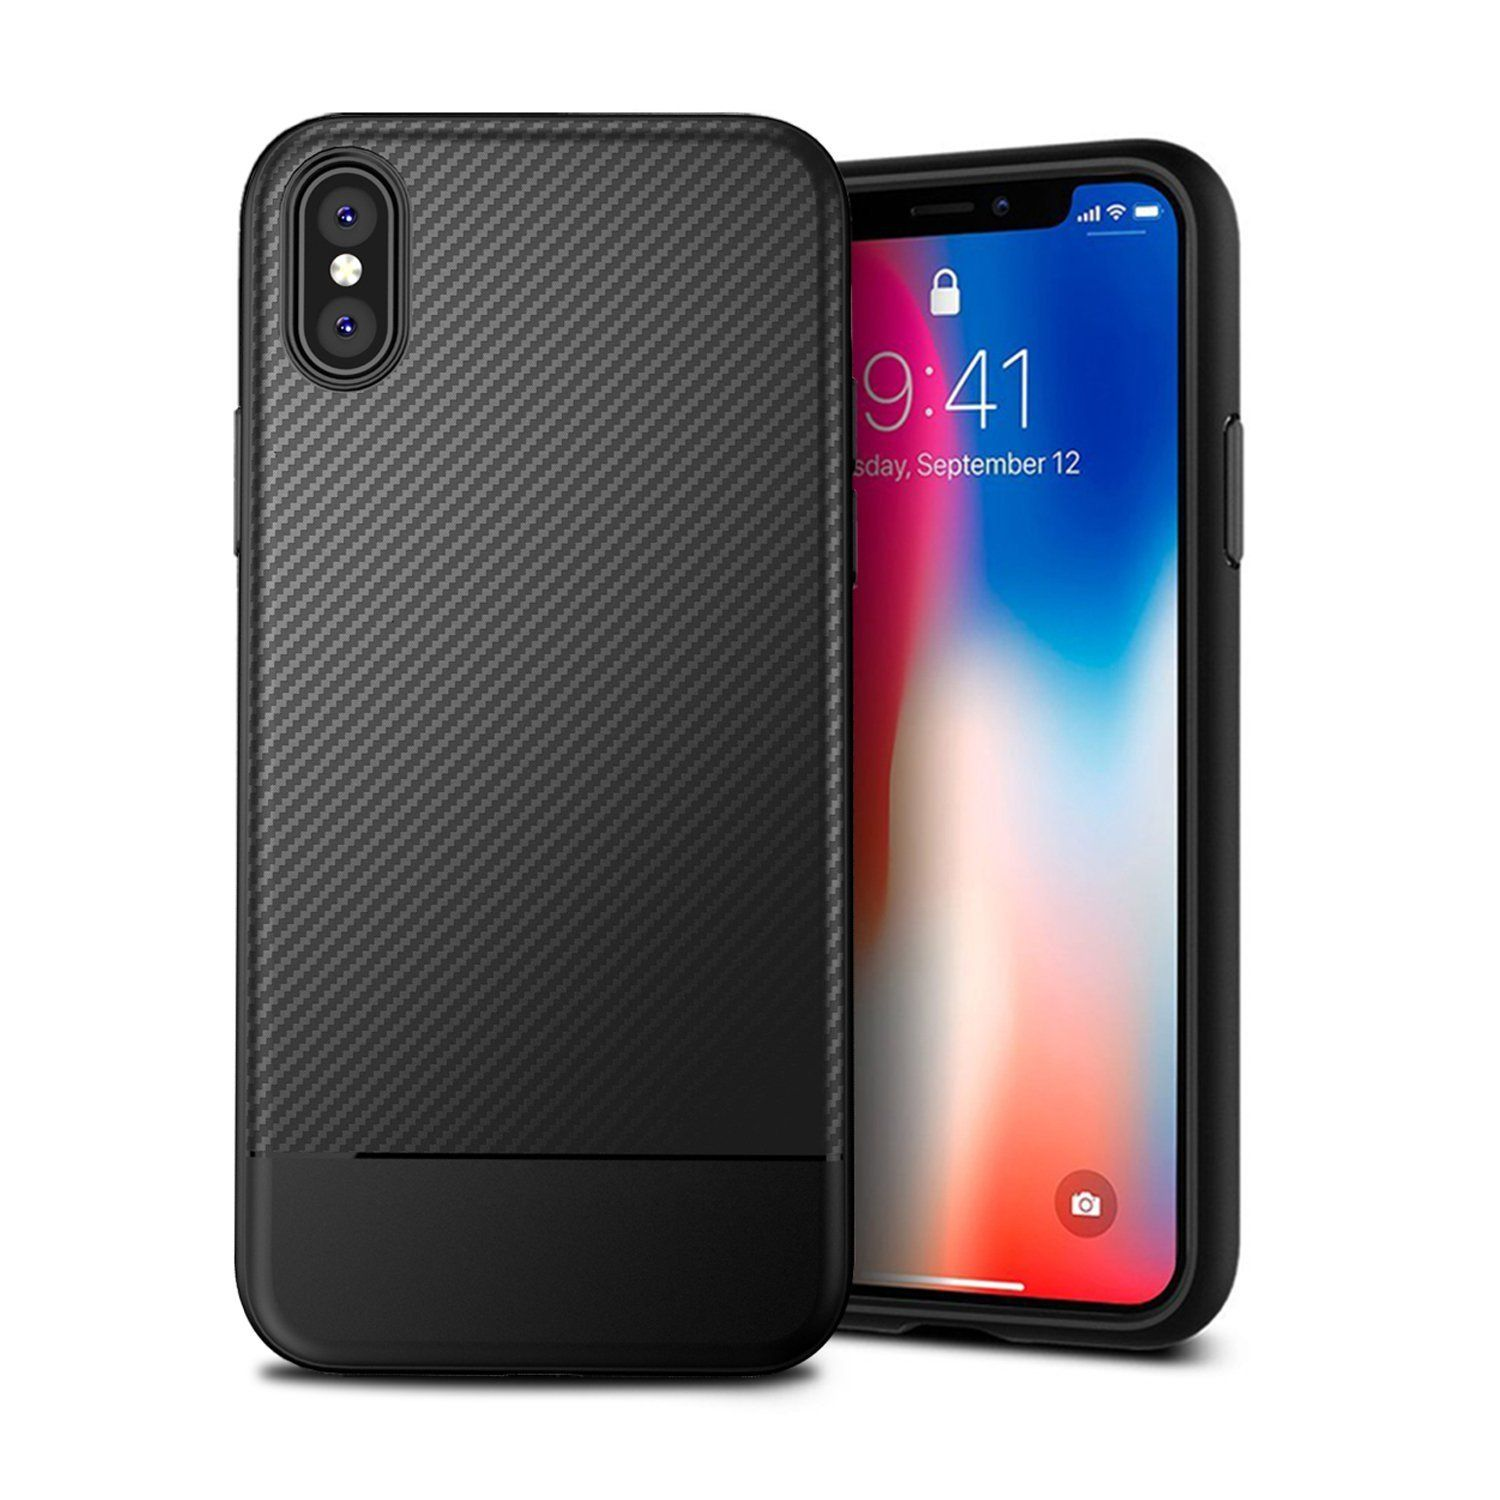 Iphone X Case Iphone 10 Phone Case Carbon Fiber Texture Tpu Ultra Thin Lightweight Flexible Cover Premium Soft Silicone Dustpro Iphone 10 Iphone Soft Silicone